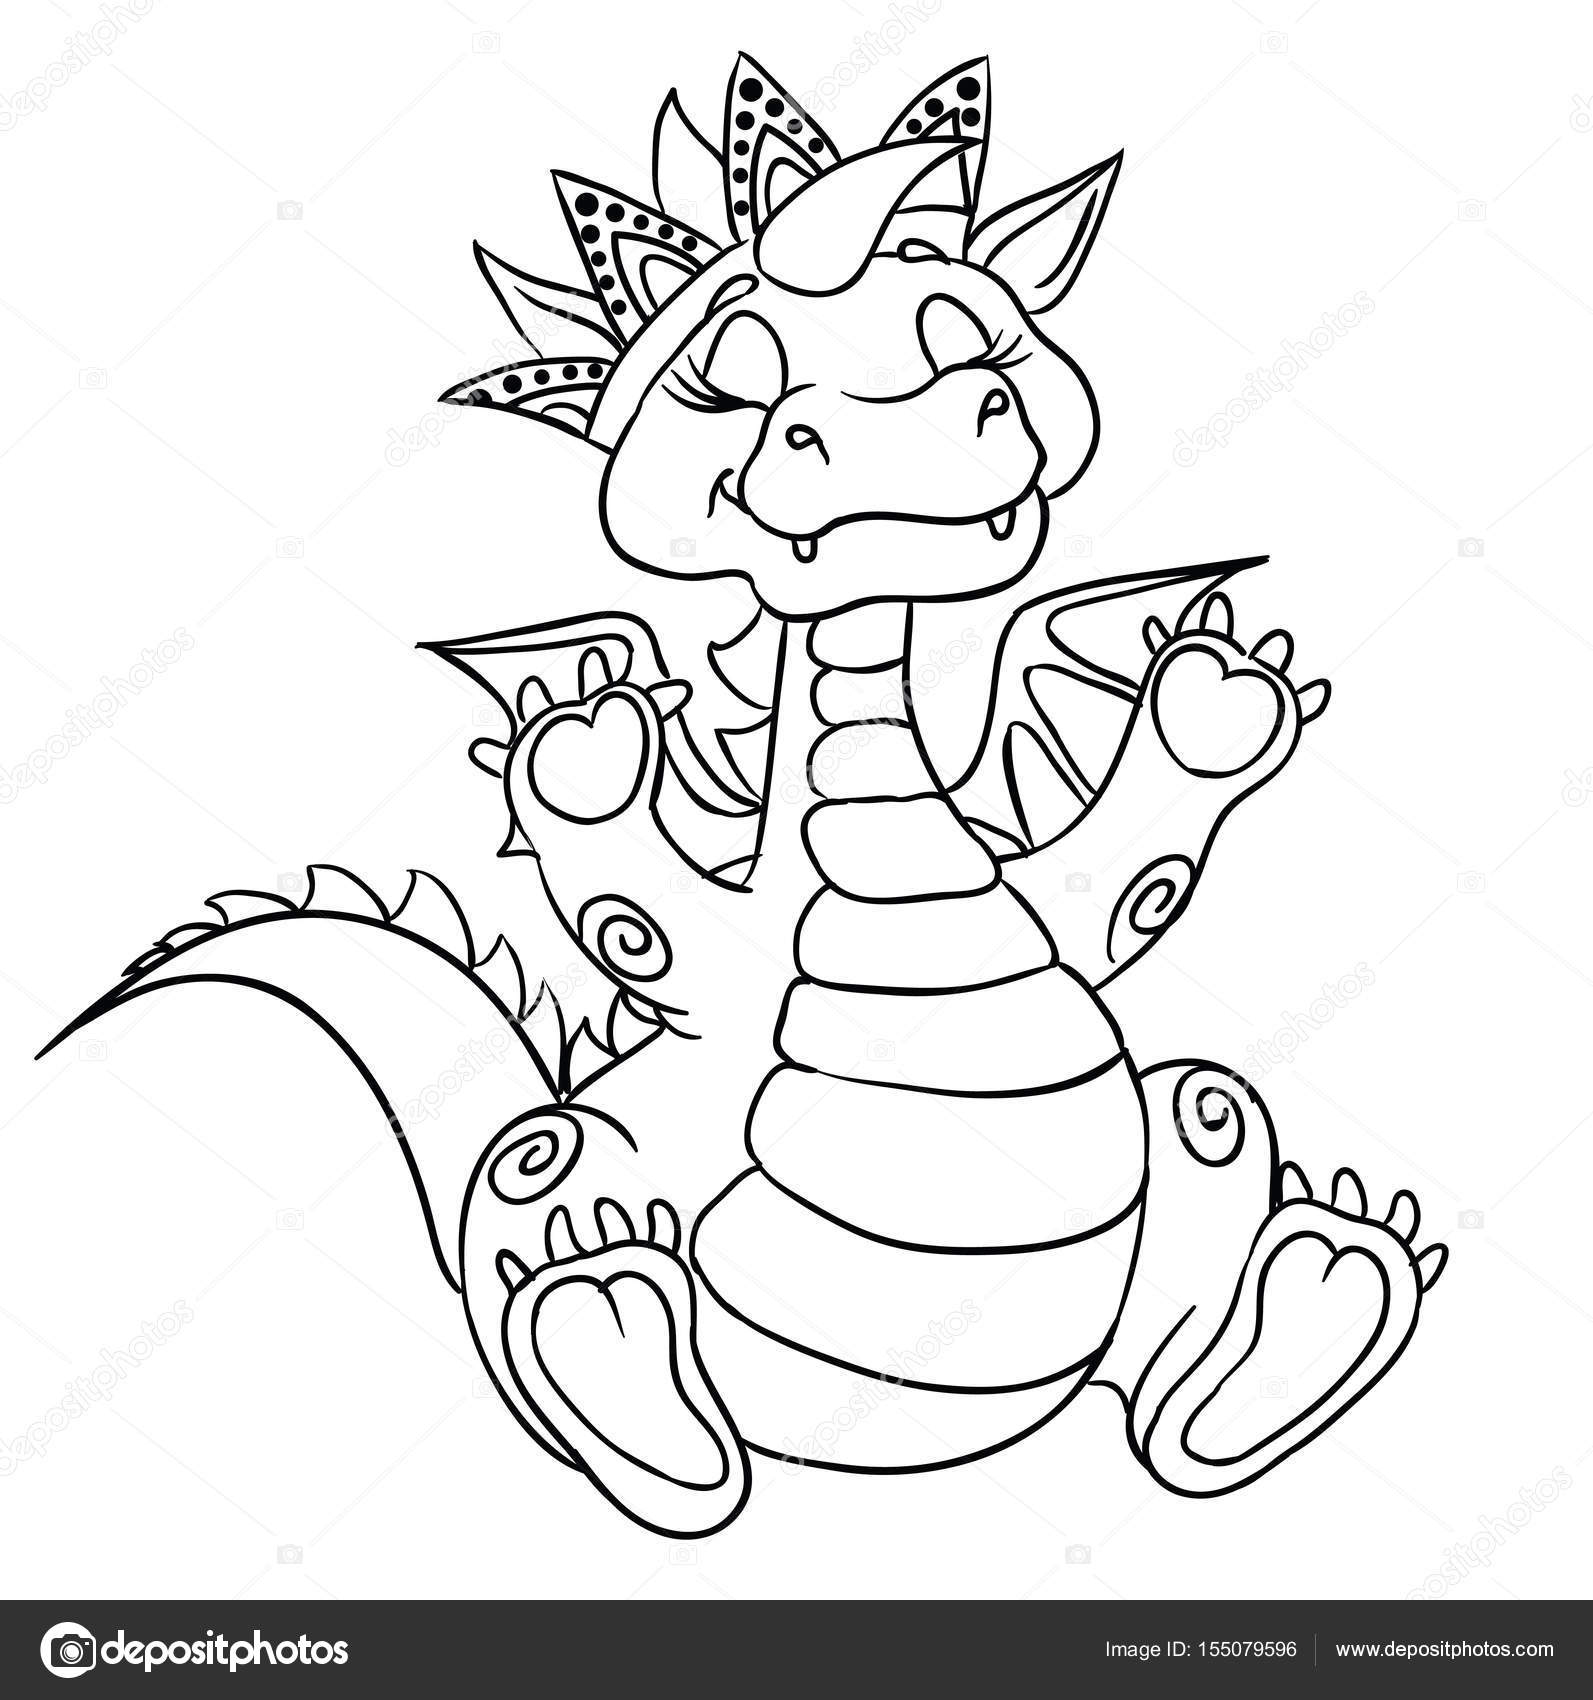 Coloriage Chat Avec Couronne.Page De Coloriage Dragon Couronne Image Vectorielle Efoxly